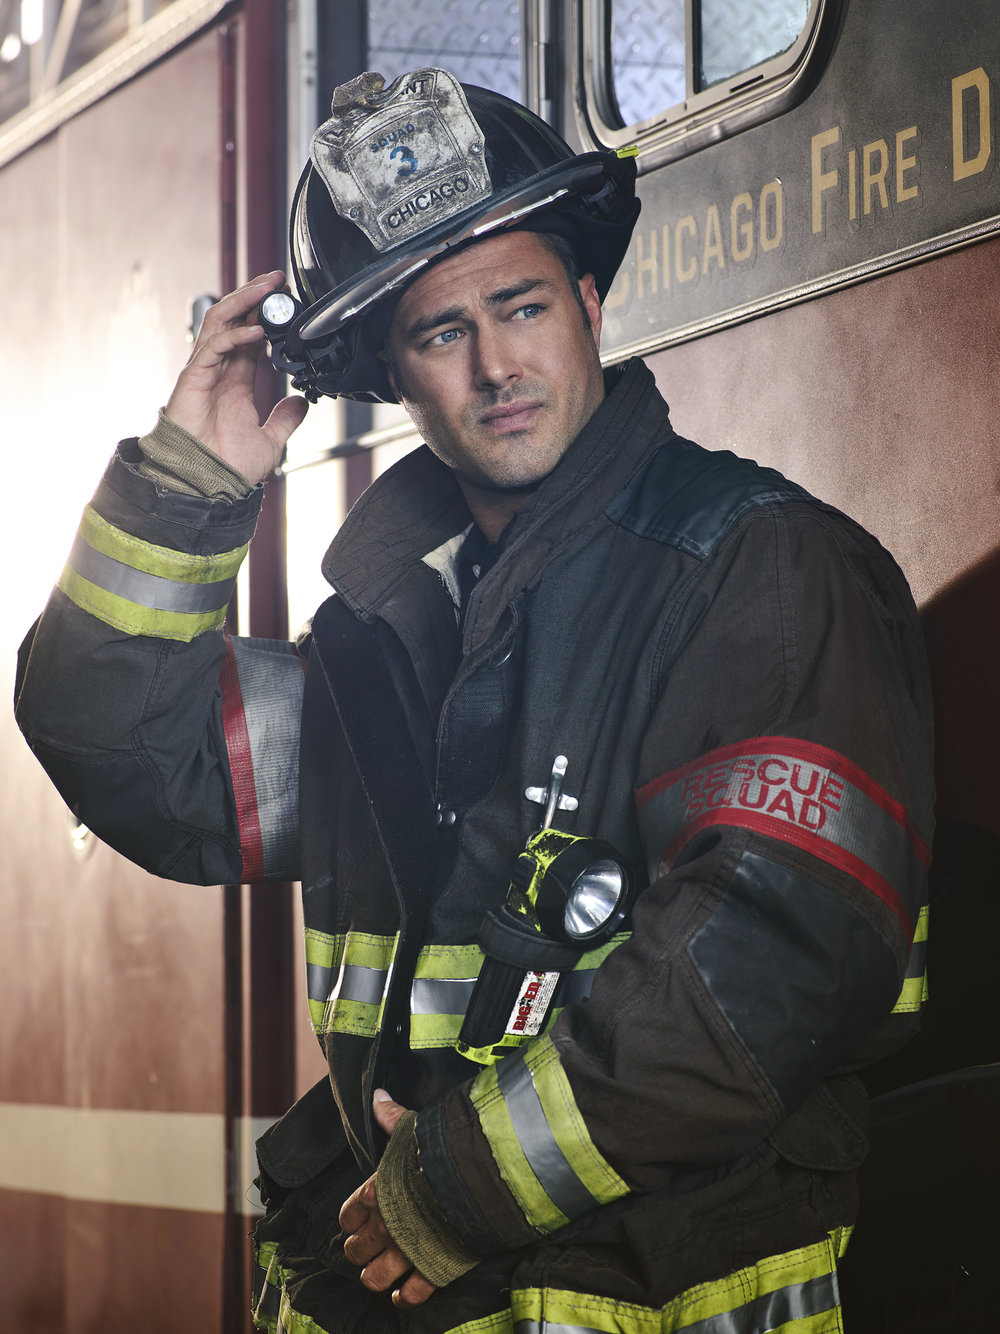 CHICAGO FIRE, NBC - Taylor Kinney